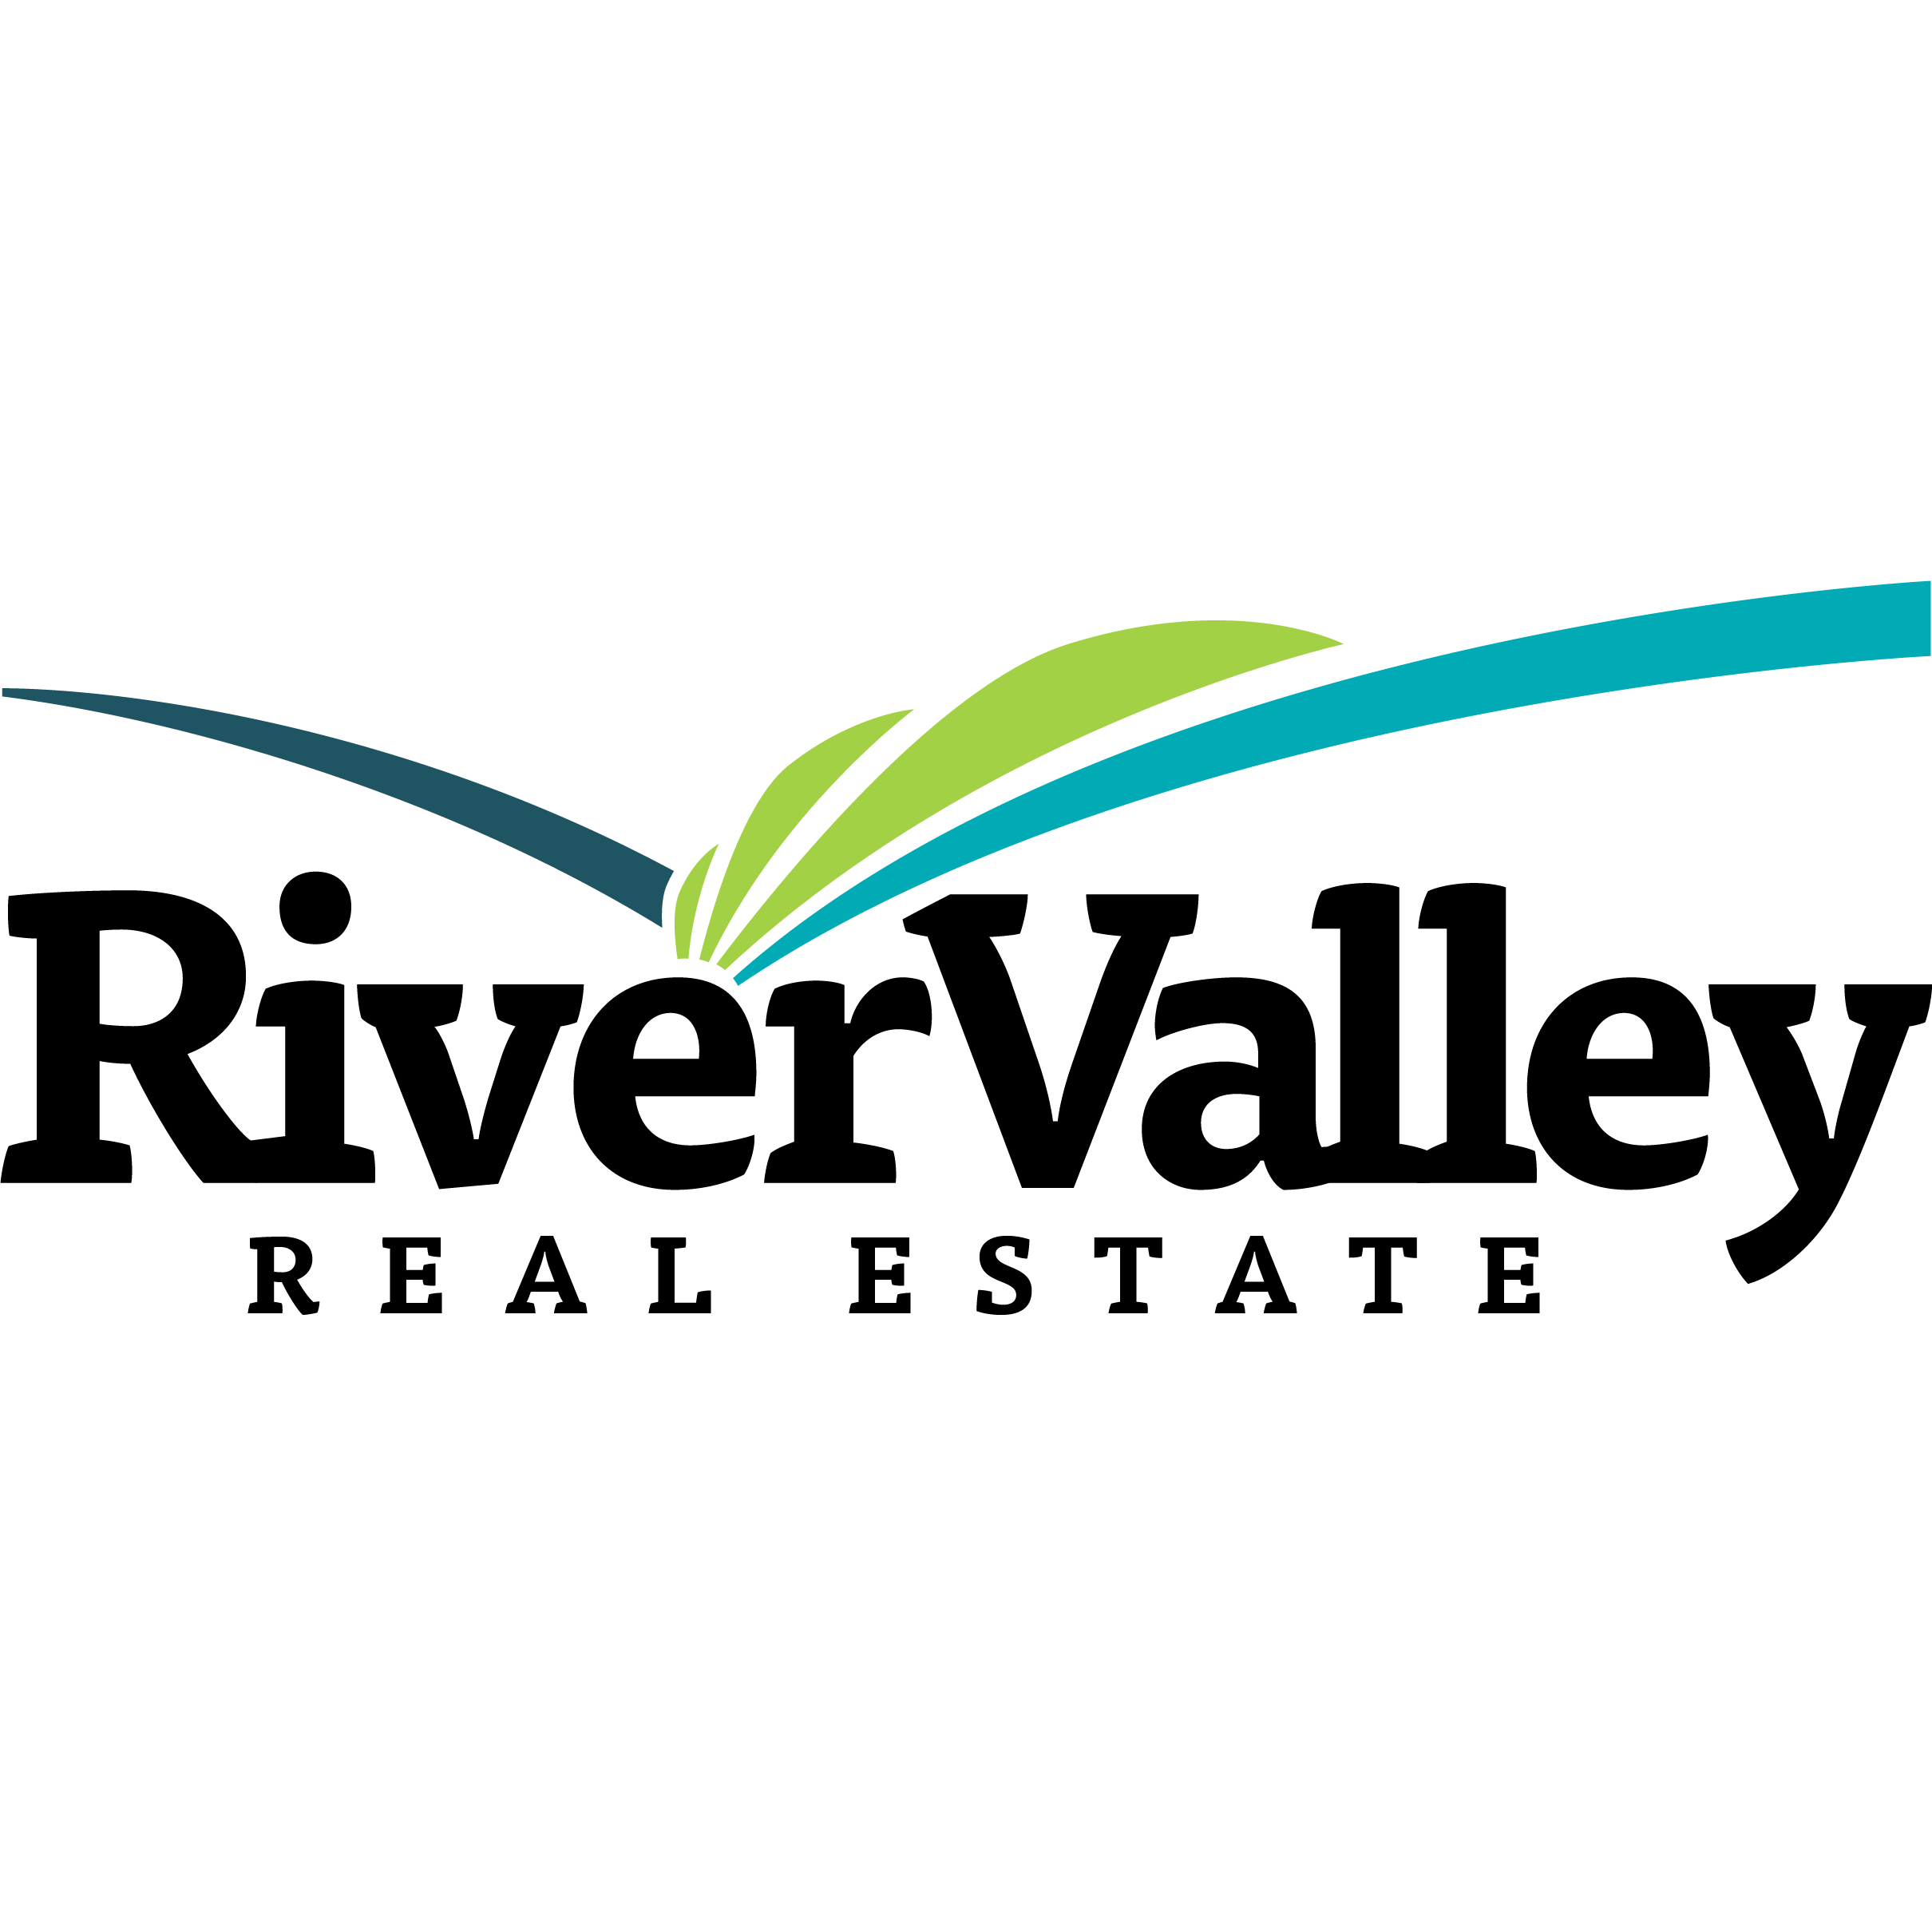 River Valley Real Estate at Keller Williams